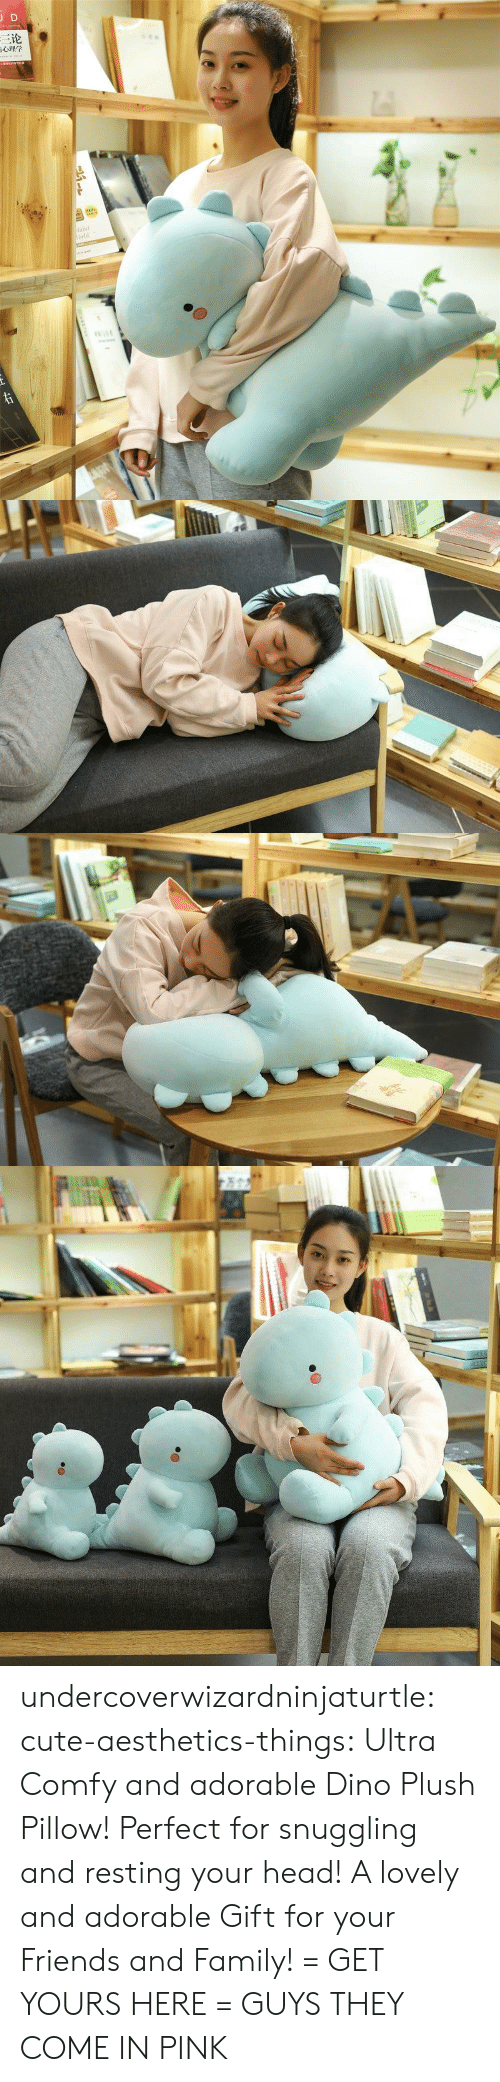 Resting: JD  三论  laint  orld  TNAR  ww.e undercoverwizardninjaturtle: cute-aesthetics-things:   Ultra Comfy and adorable Dino Plush Pillow! Perfect for snuggling and resting your head! A lovely and adorable Gift for your Friends and Family! = GET YOURS HERE =   GUYS THEY COME IN PINK